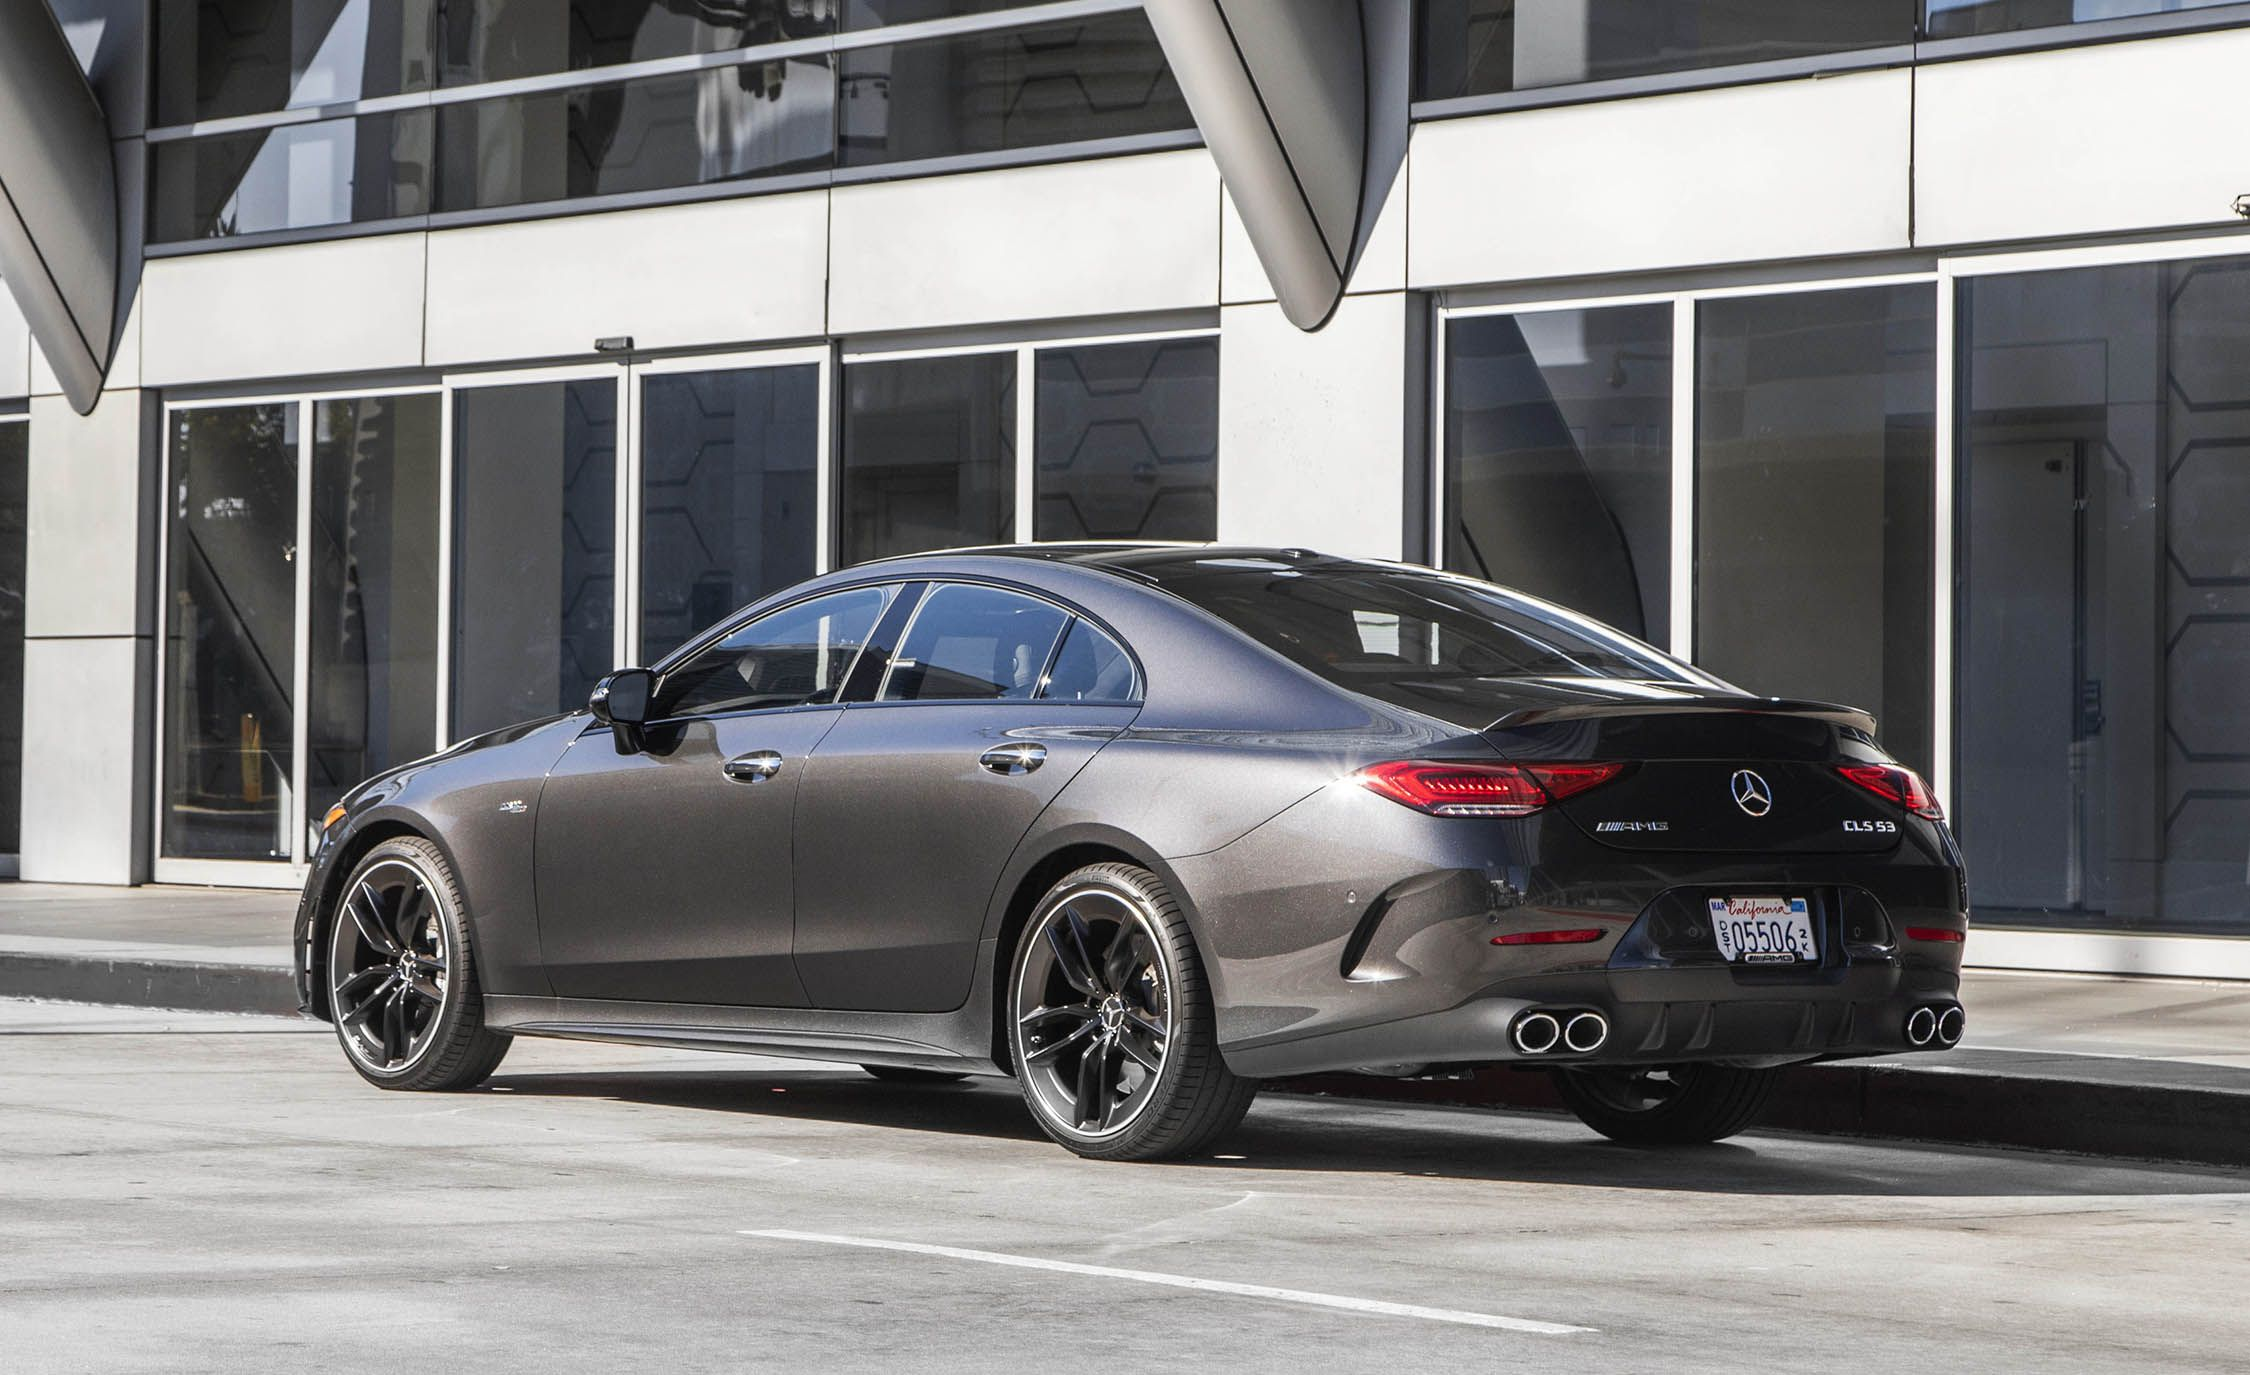 2019 Mercedes-Benz CLS Pricing - Much Higher Than the E-class